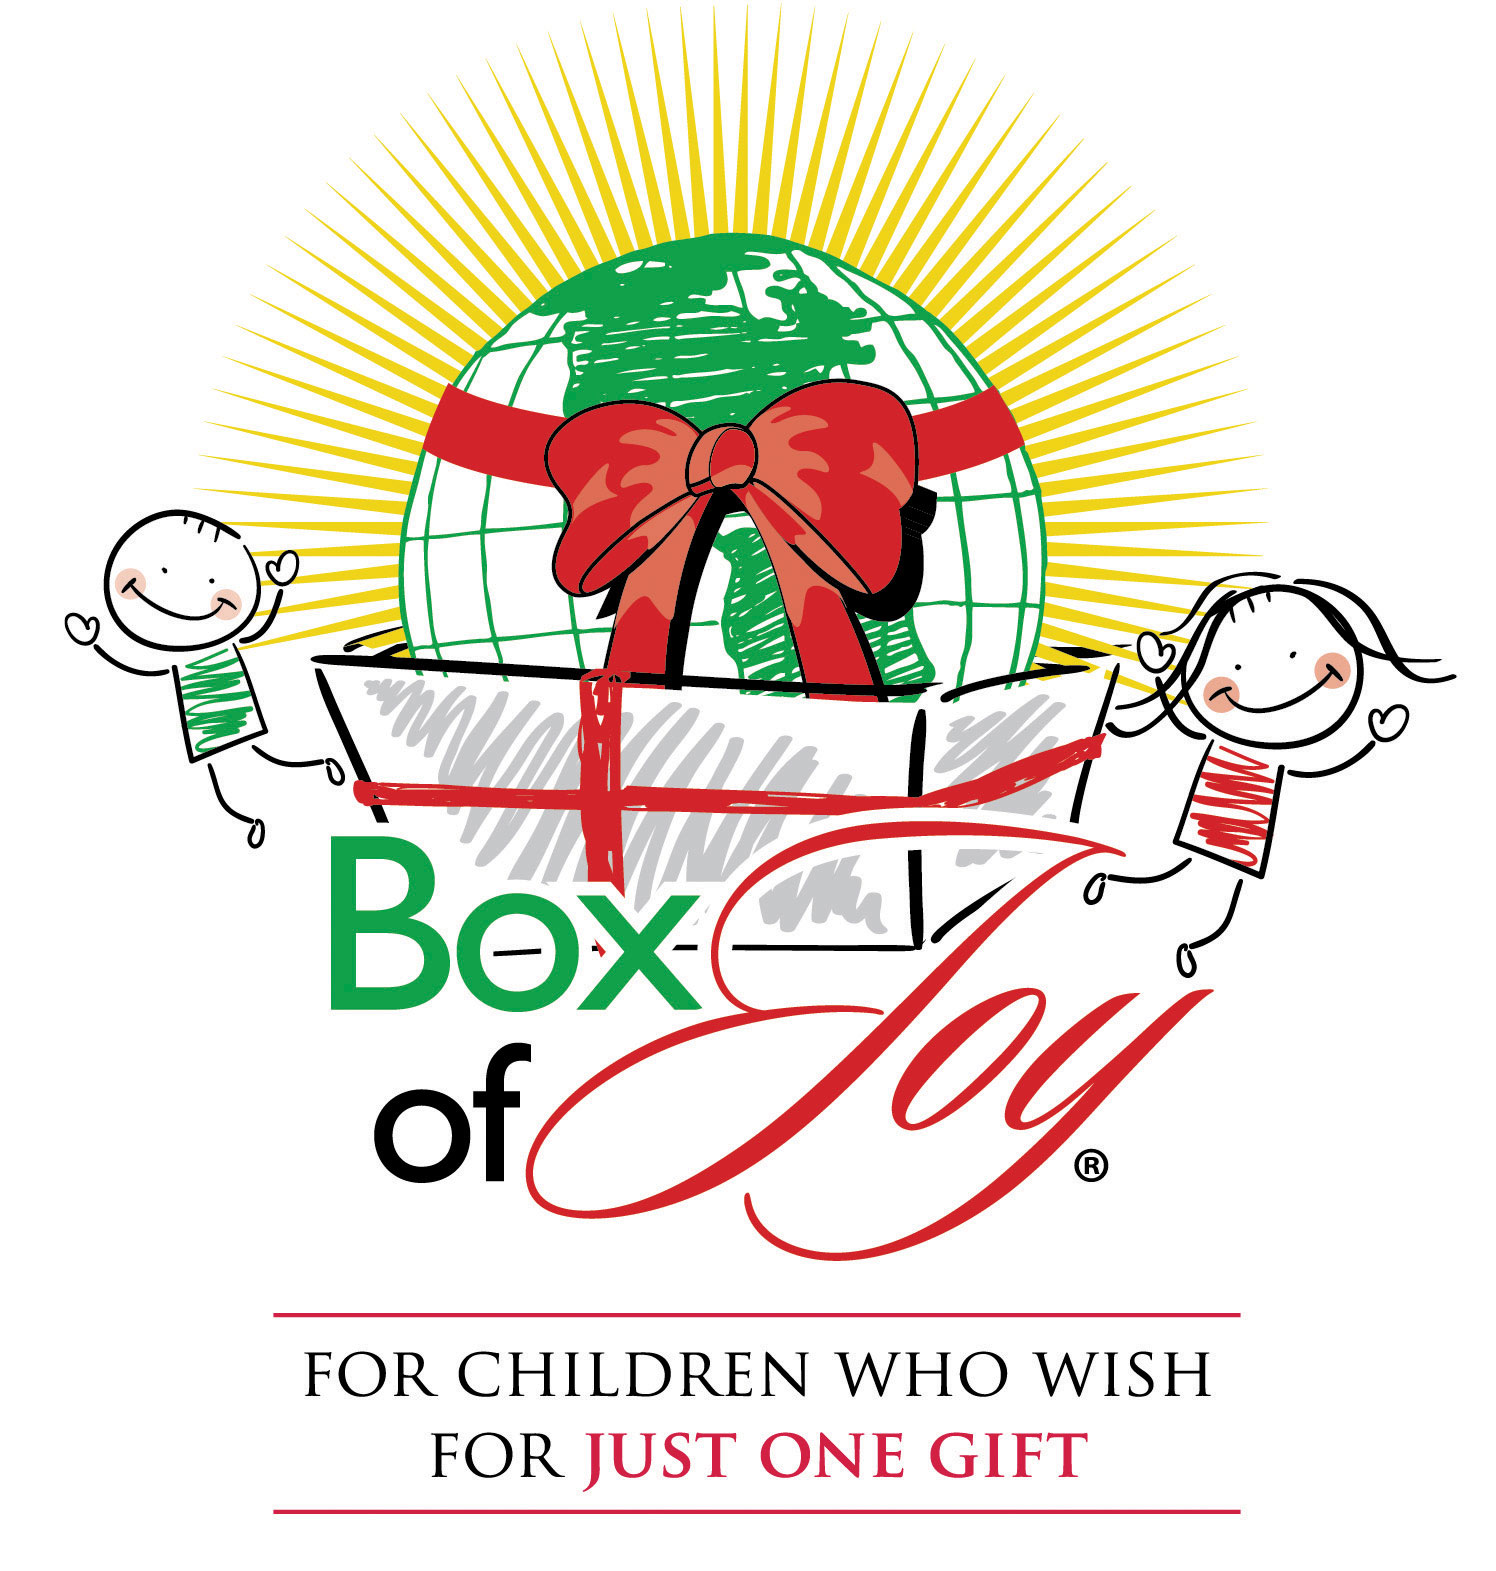 Box of Joy Artwork & Shareables | Cross Catholic Outreach